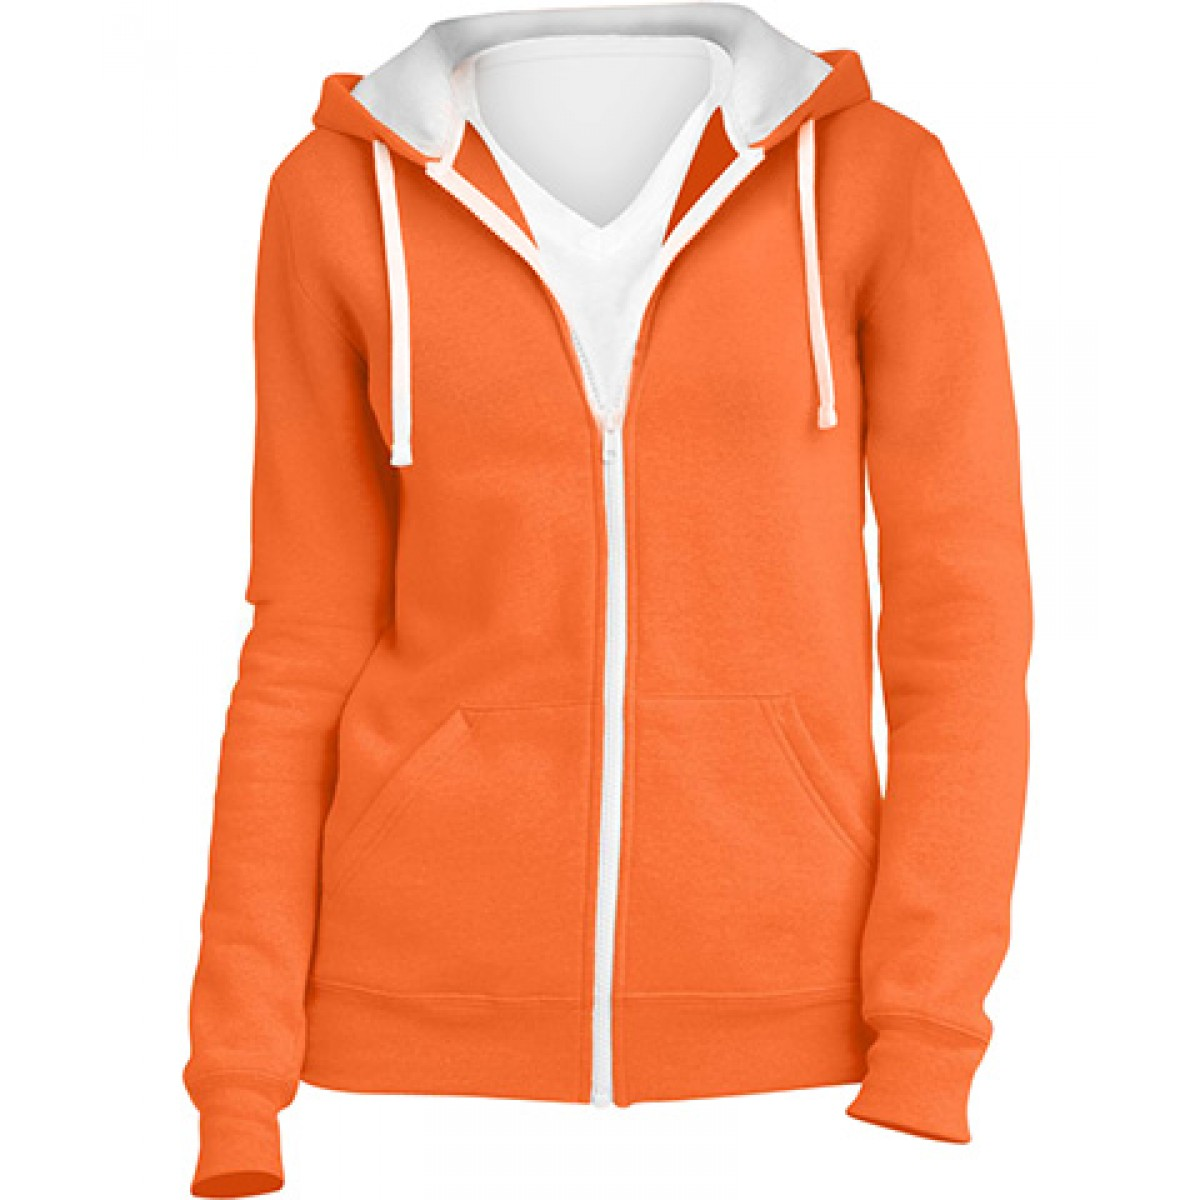 Juniors Full-Zip Hoodie-Neon Orange -XL